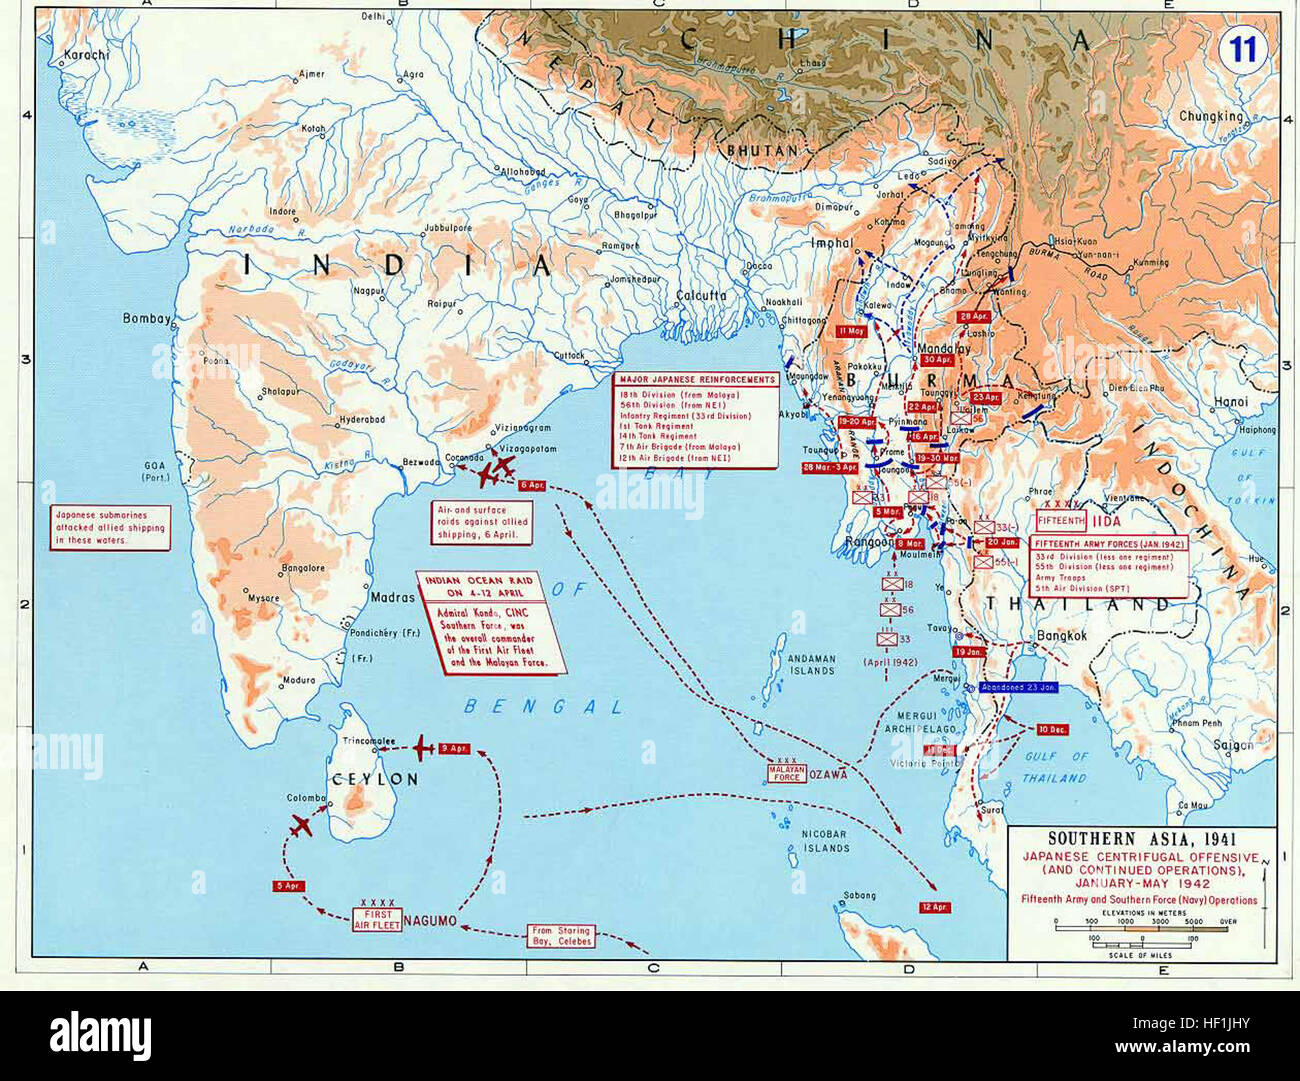 Pacific War - Southern Asia 1942 - Map Stock Photo: 129728983 - Alamy